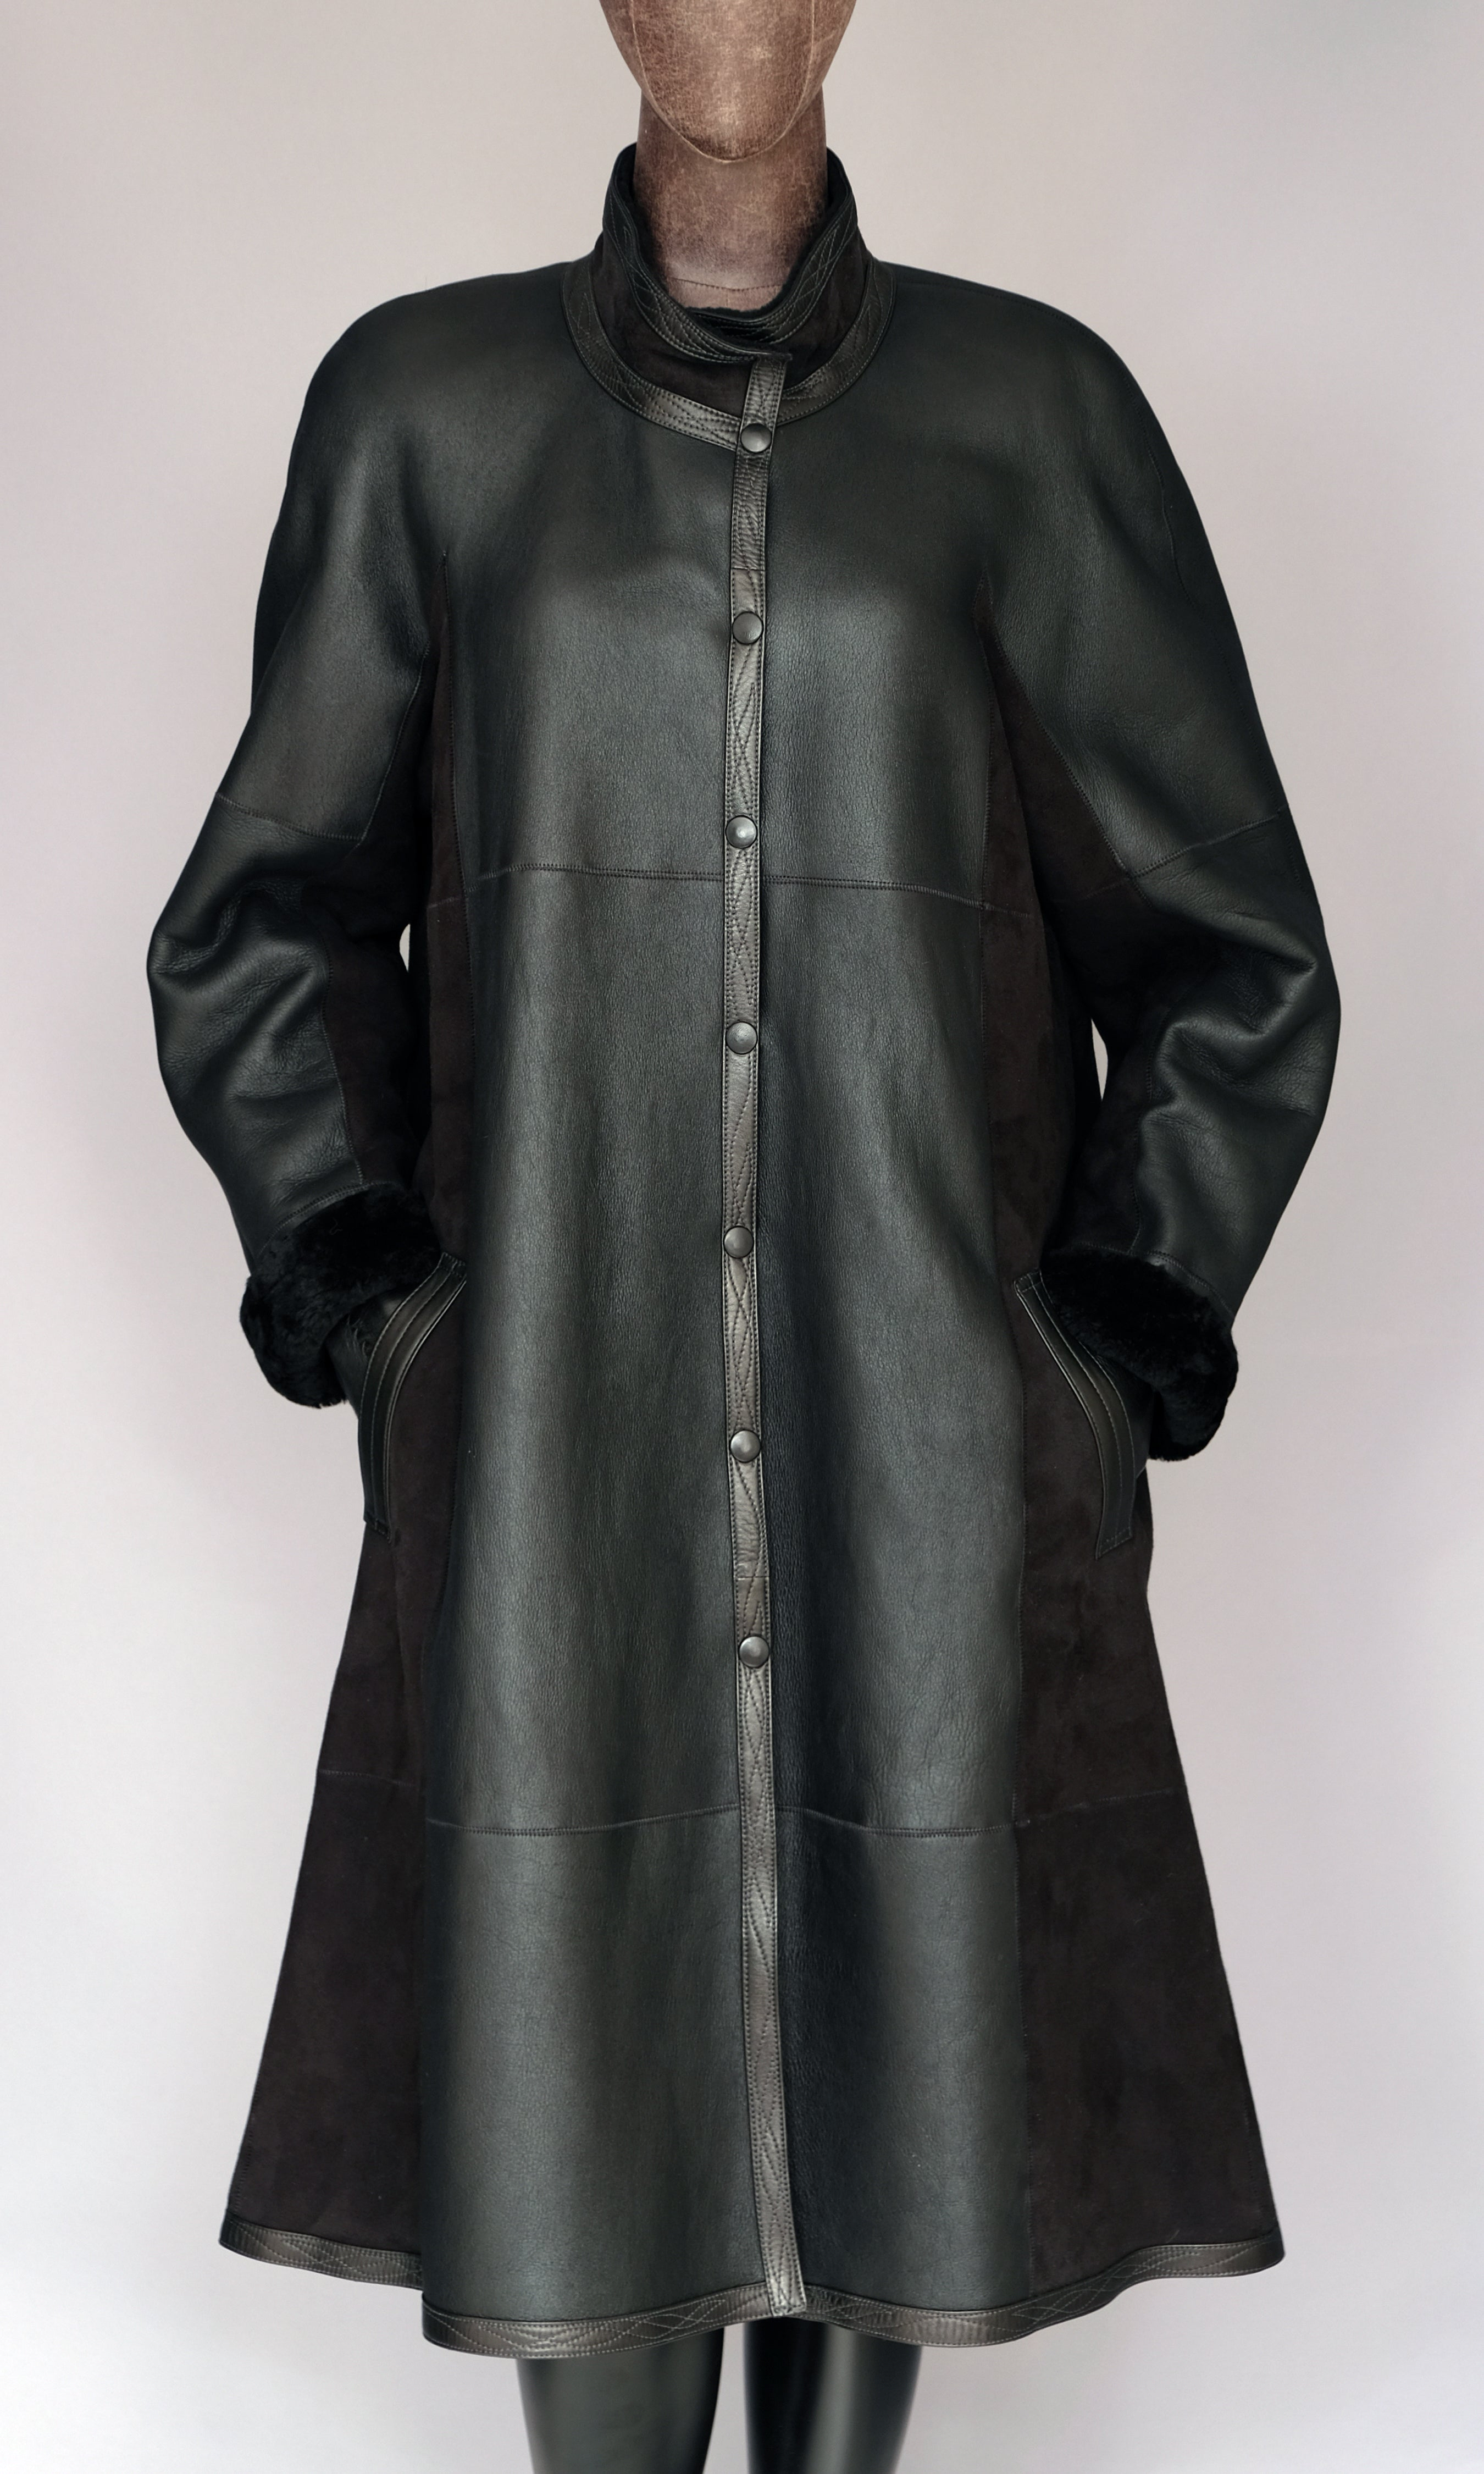 Long Black Shearling Coat size medium (10)